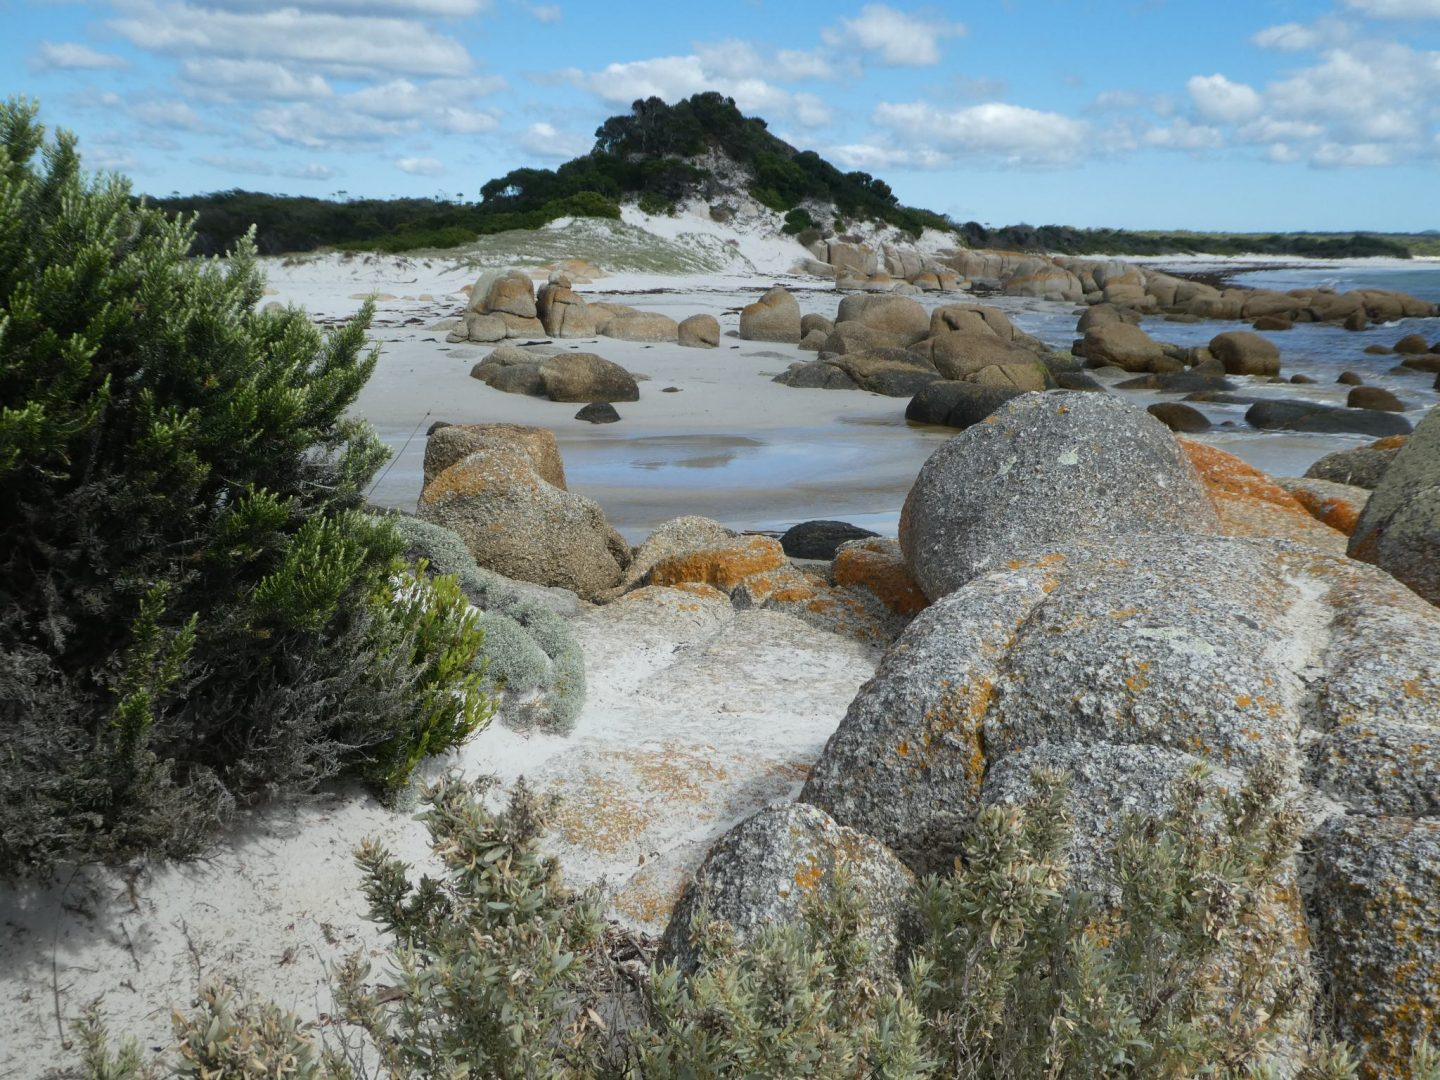 Bay of Fires (21 to 24 February 2021)